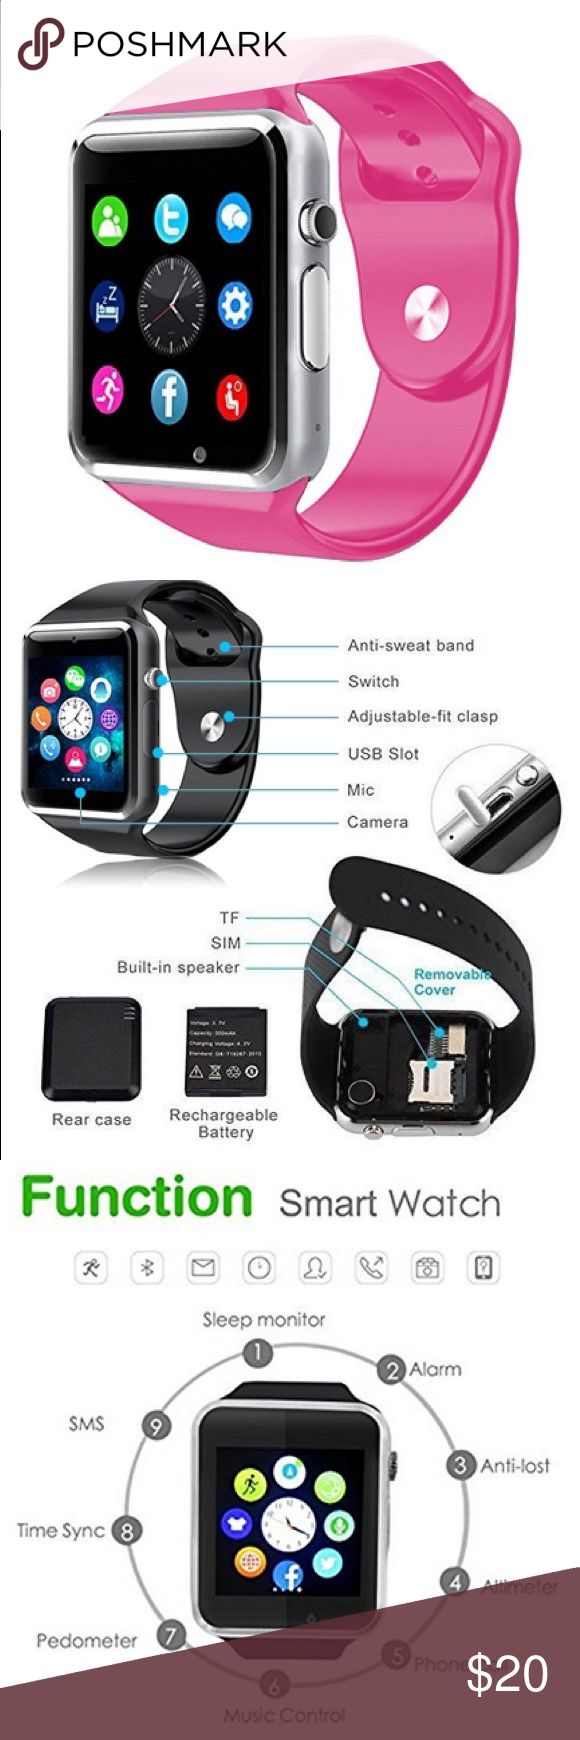 New Smart watch Bluetooth Touch Screen Smart Wrist watch Phone with Camera NOTE:  Android System can support all function in the description.  Below 2 functions can't sync with iPhone. But all other functions can use normally.  1. Notifier Alerts you when Apps on your Phone need Attention (ANDROID ONLY) 2. Read and Send Text Messages (ANDROID ONLY)  Use this watch as a standalone phone by inserting a sim card or pair it with your phone by Bluetooth or do both Accessories Watches